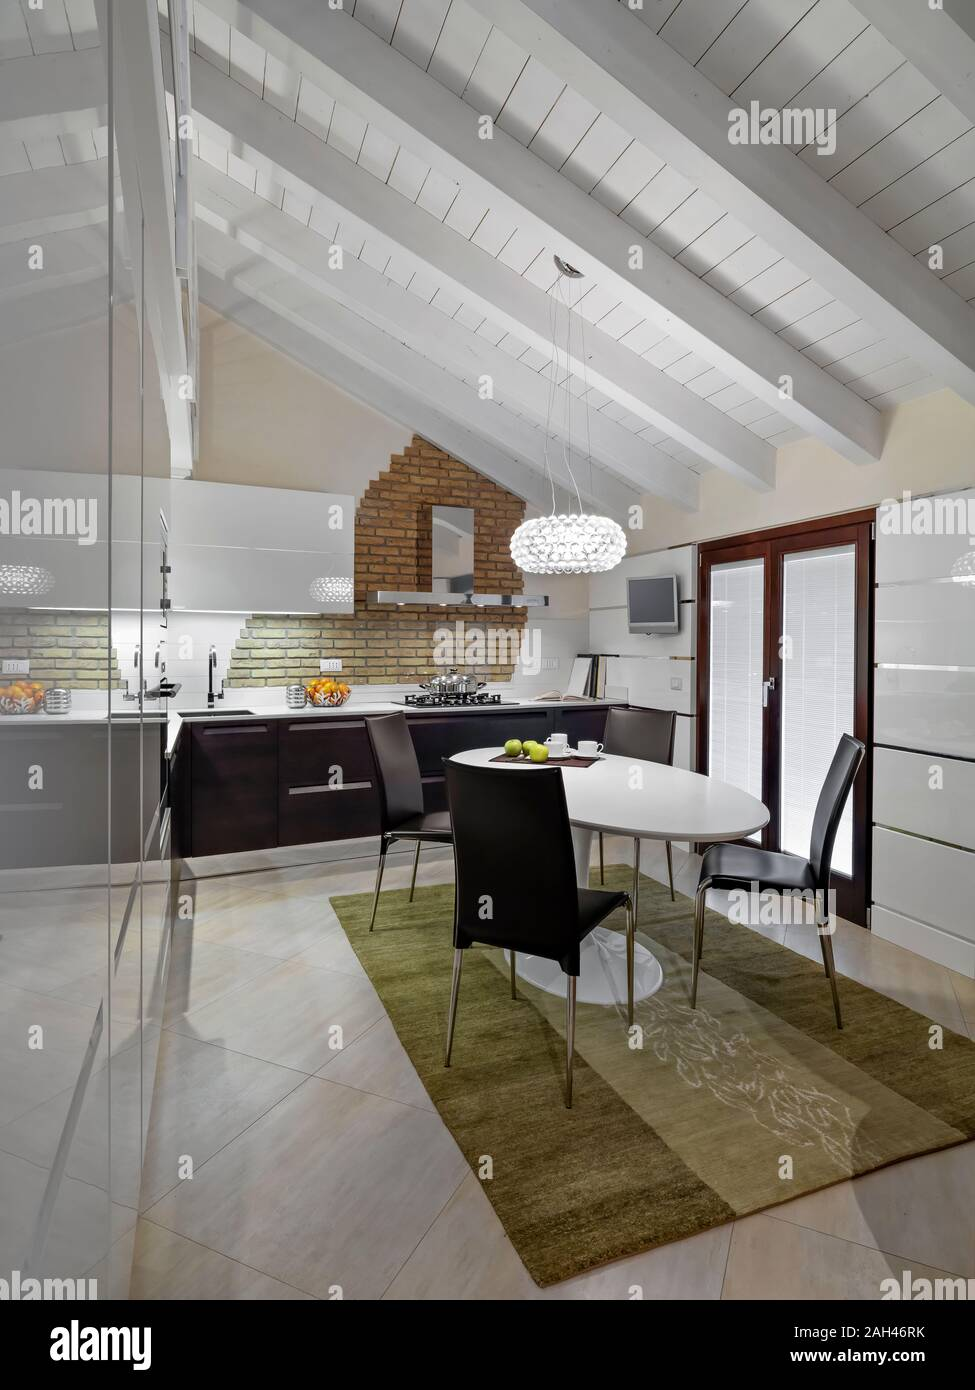 interior shot of a modern kitchen in the attic room with dining table and carpet Stock Photo